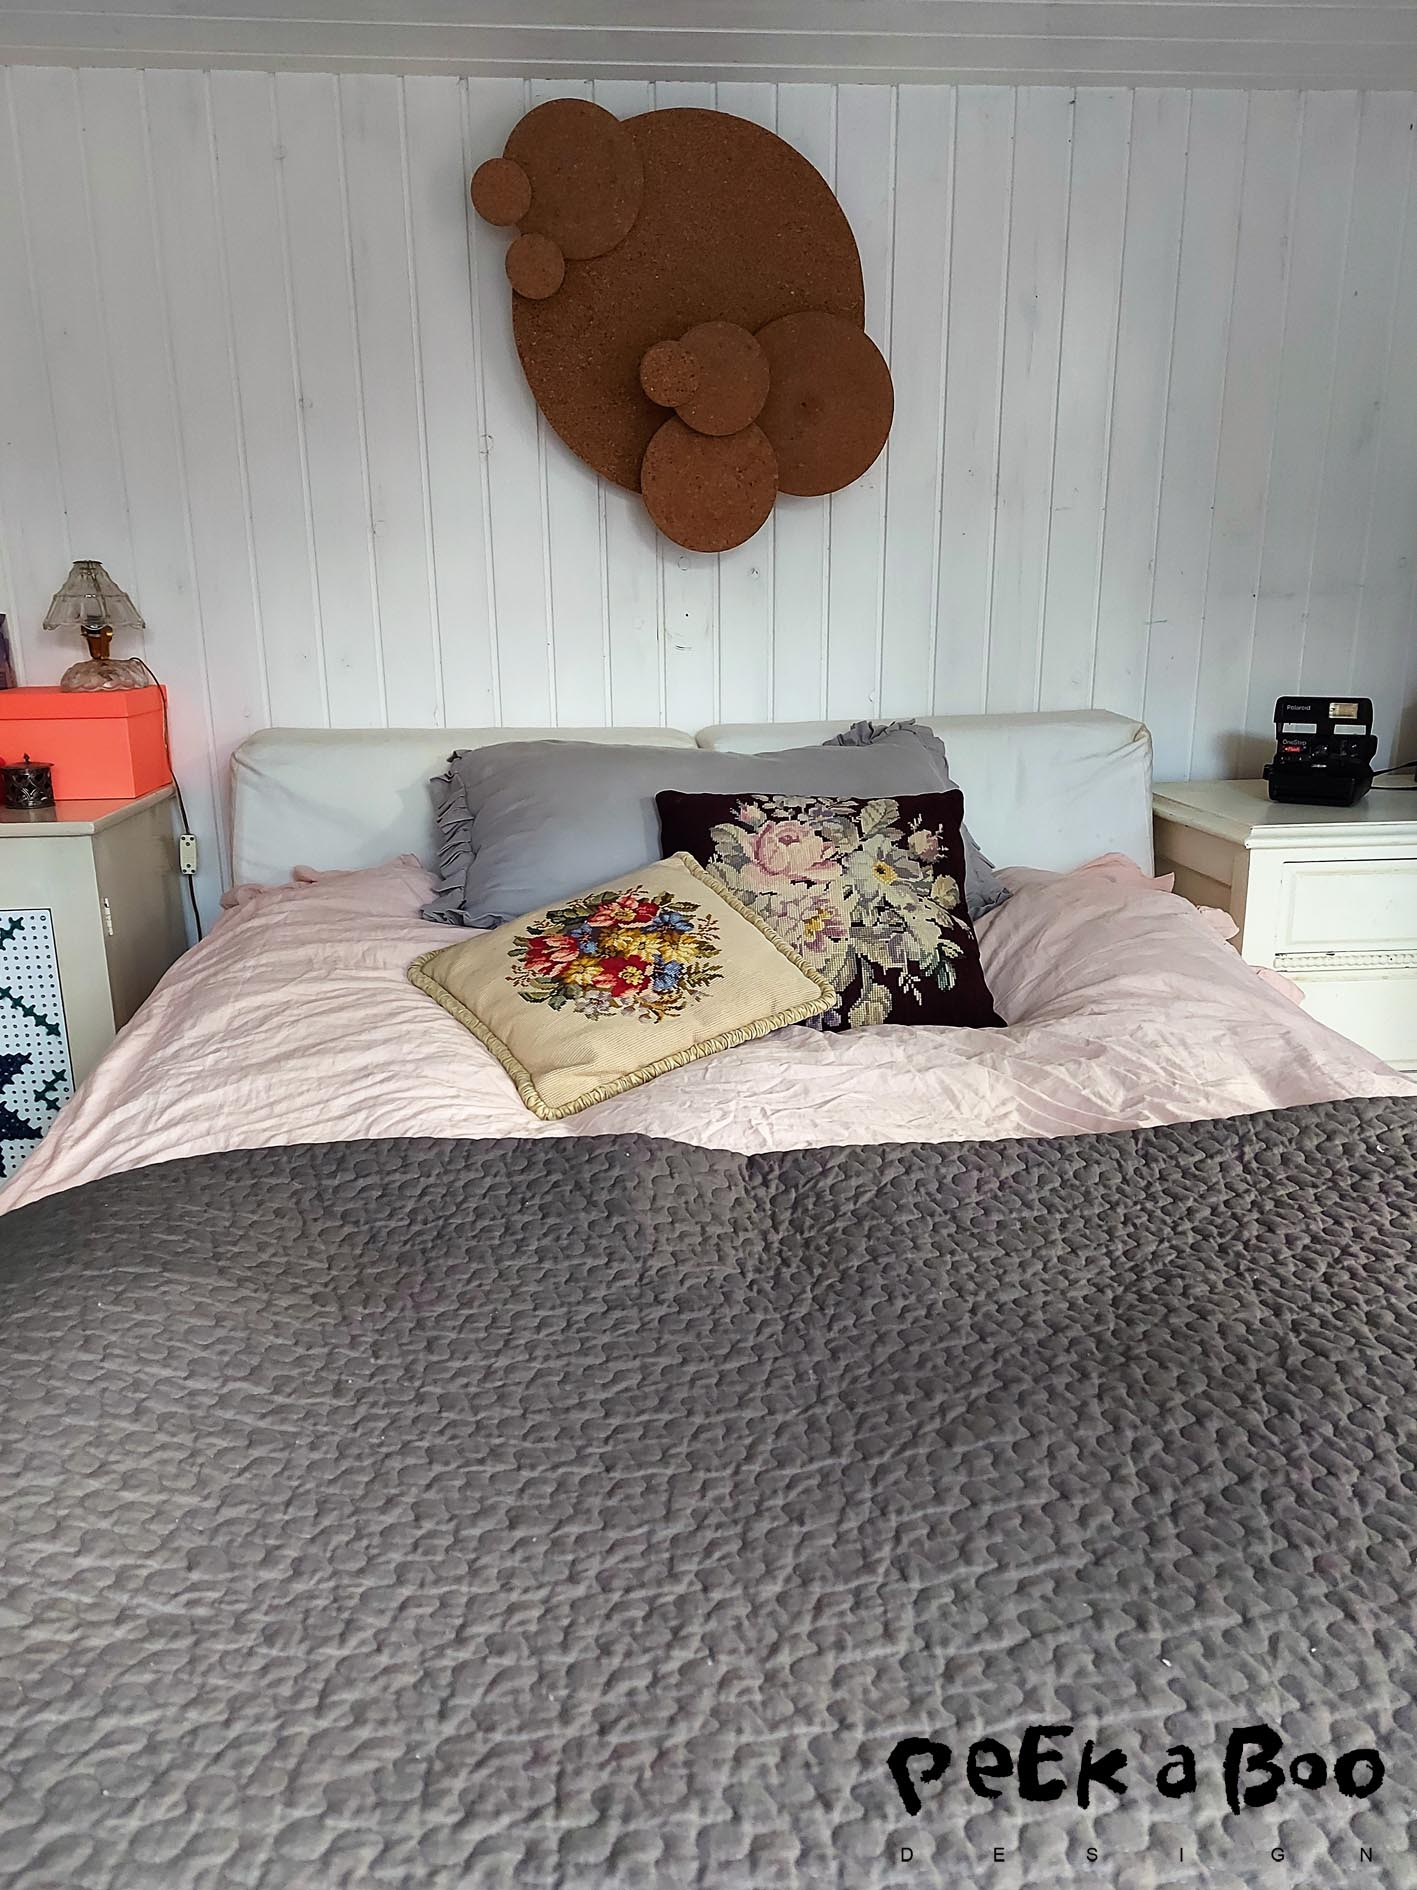 Our bedroom in the summerhouse is tiny but cosy and with the heat blanket under the duvet it is always nice to hop into a warm bed.